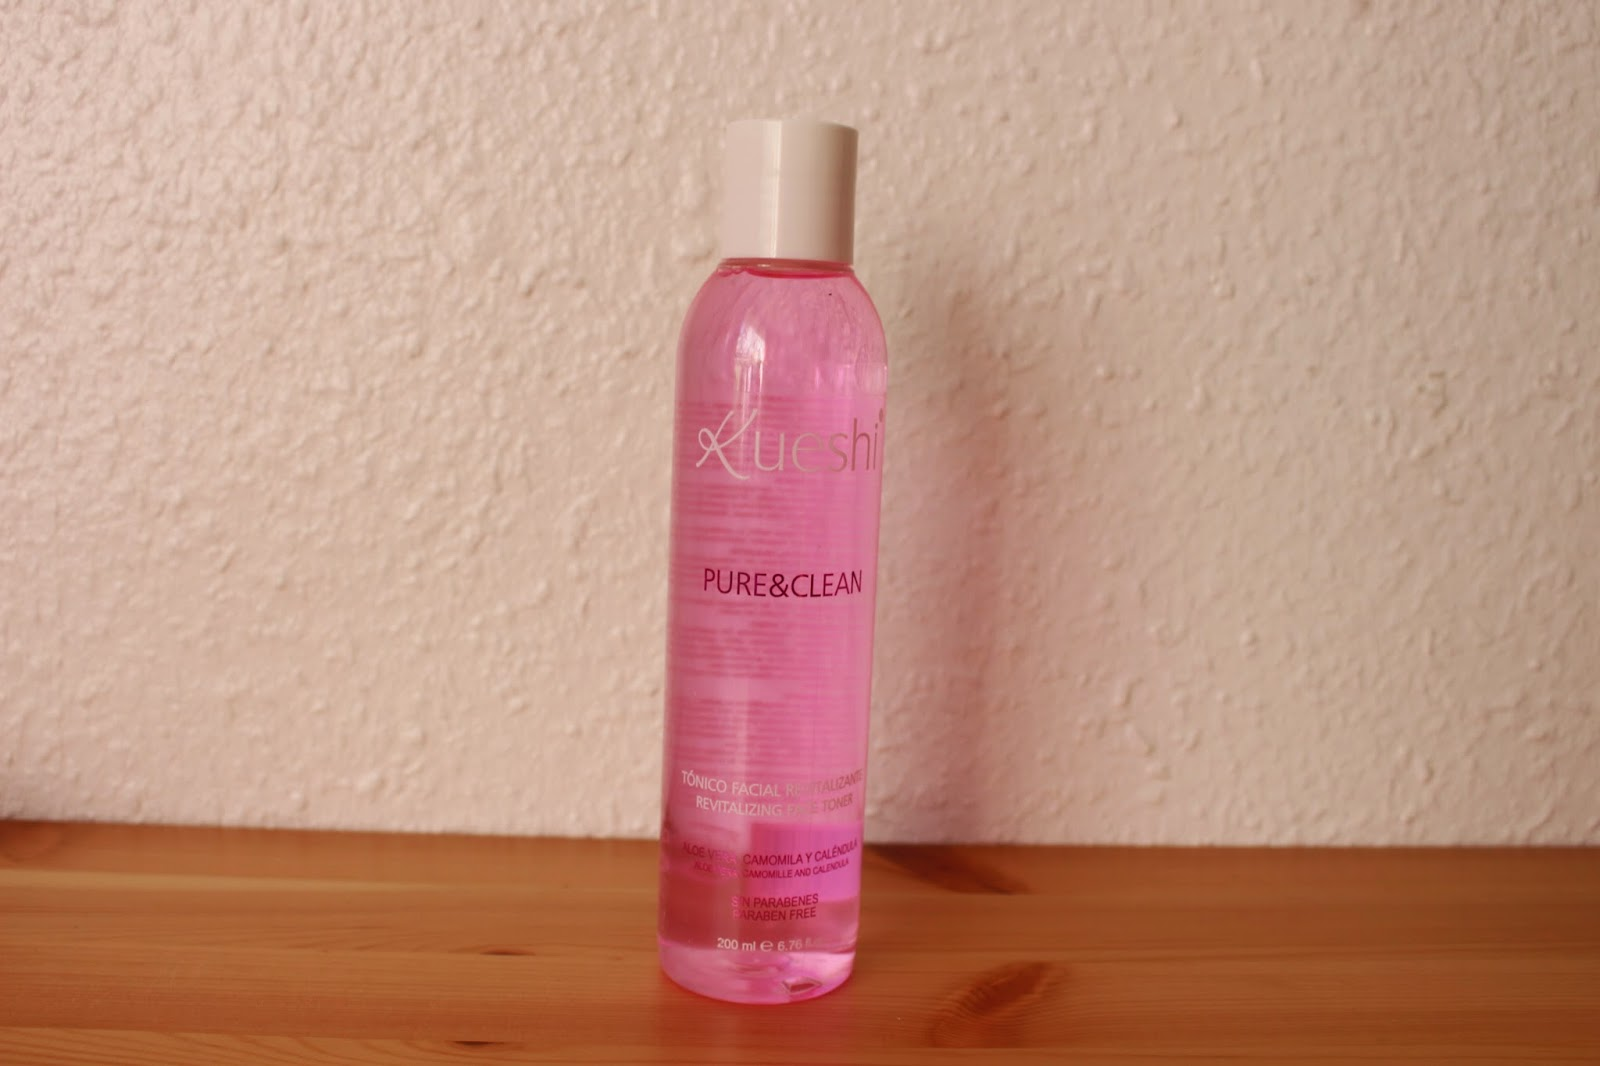 Kueshi Pure & Clean Face Toner